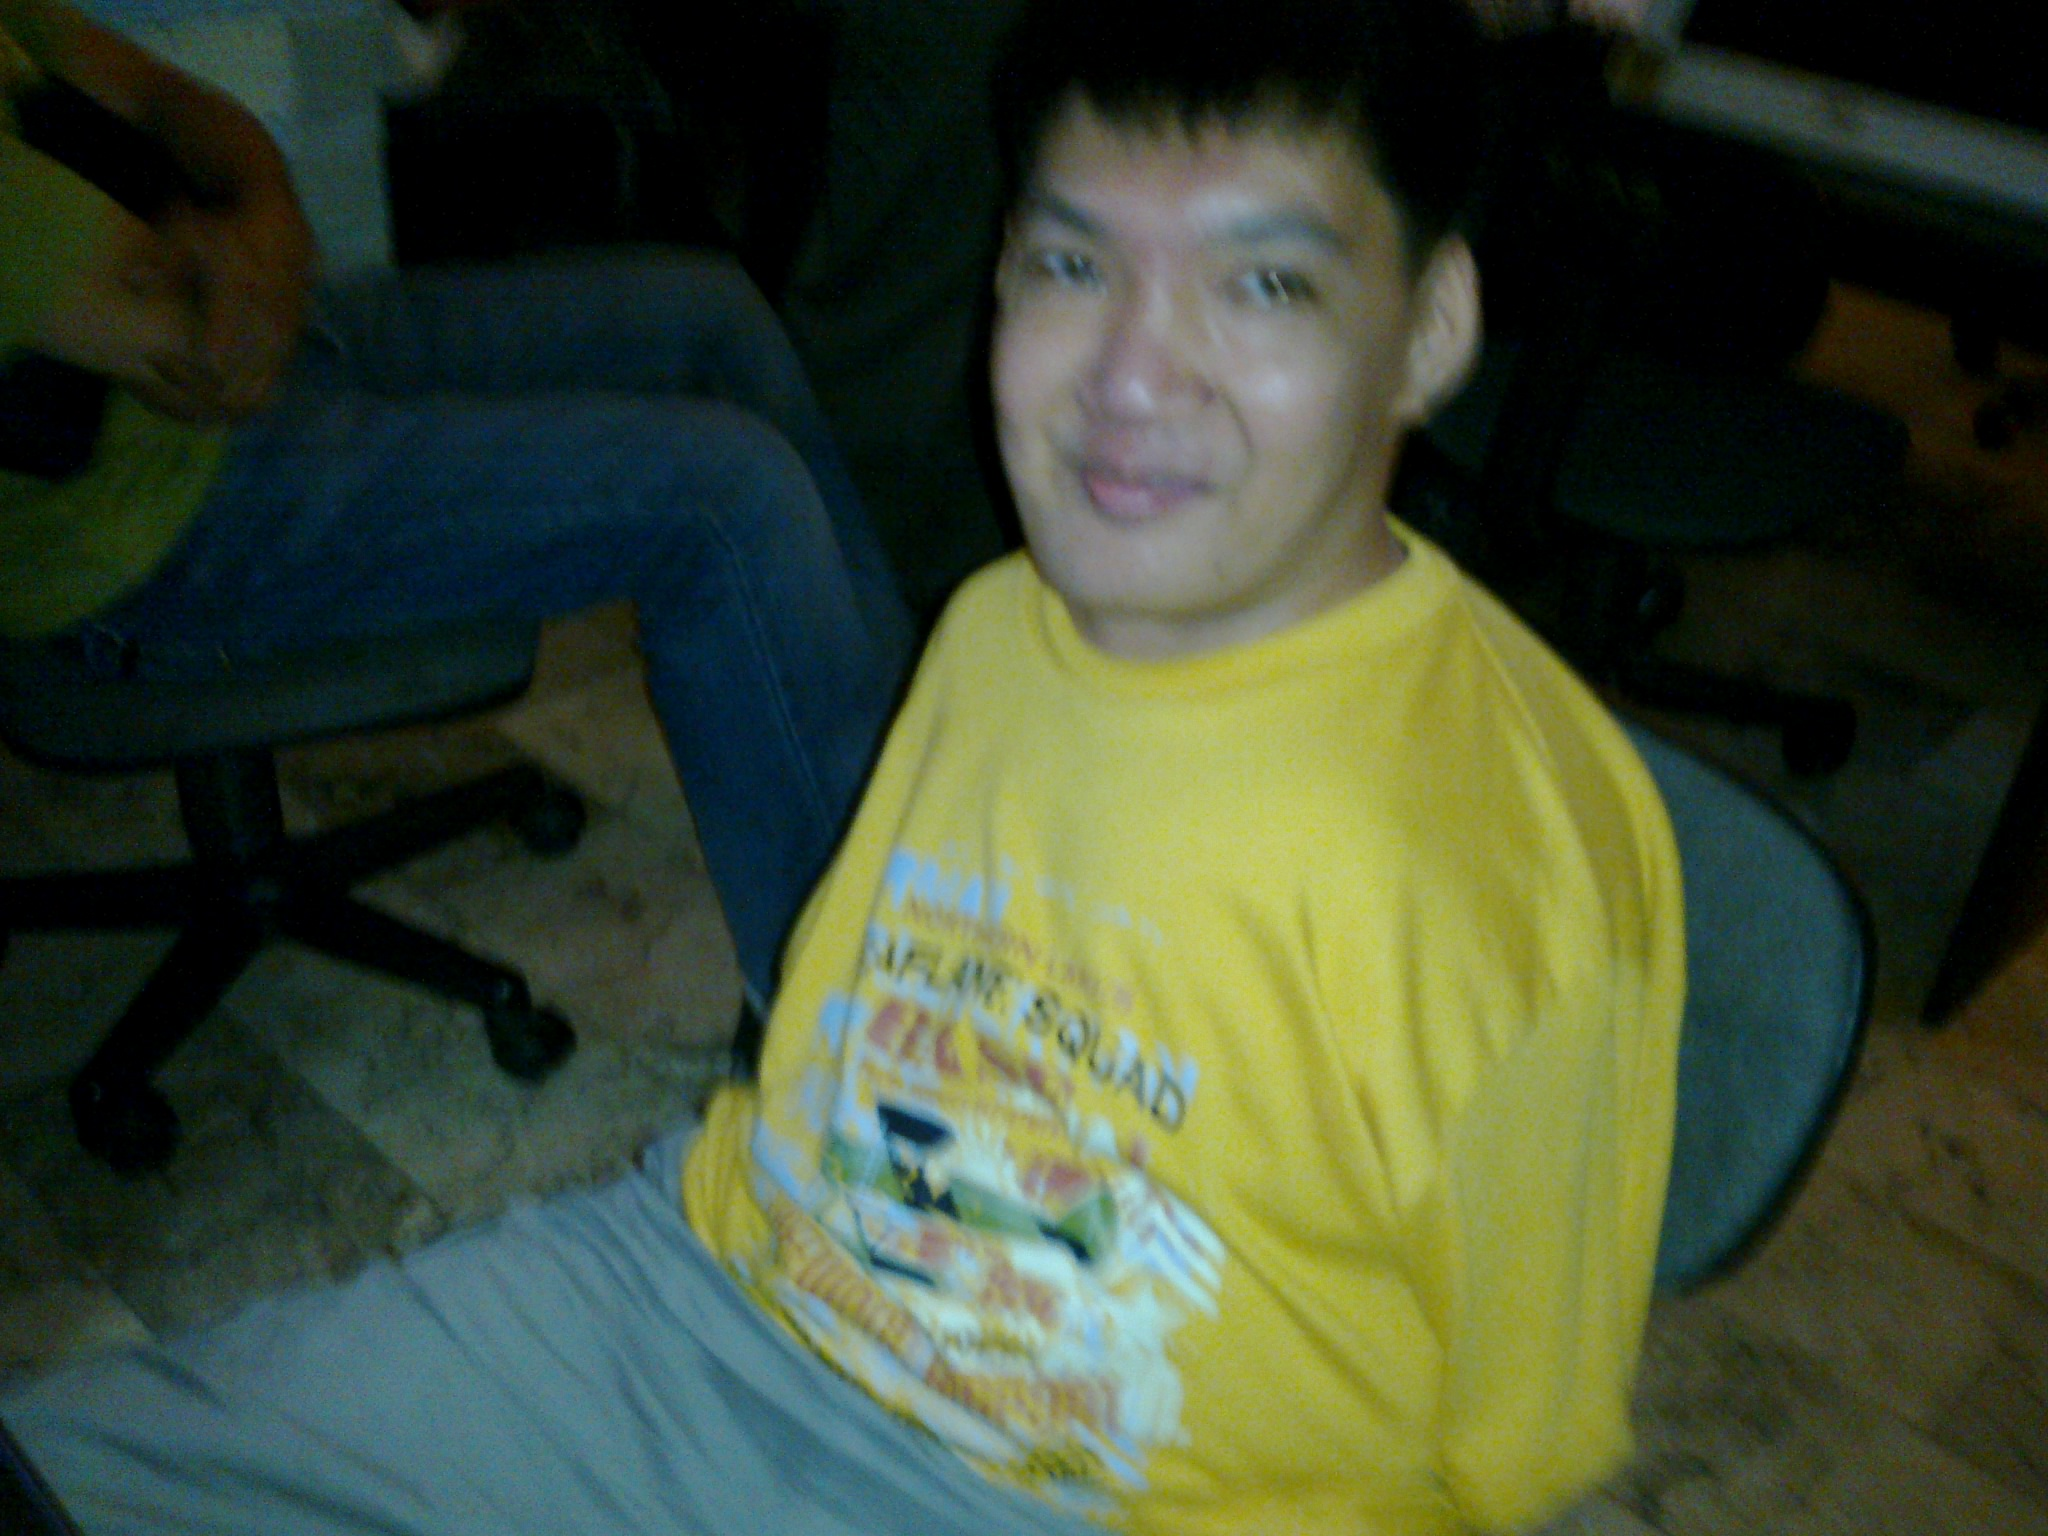 Image of trainer sir Eric Tansinco of Take 1 Animation